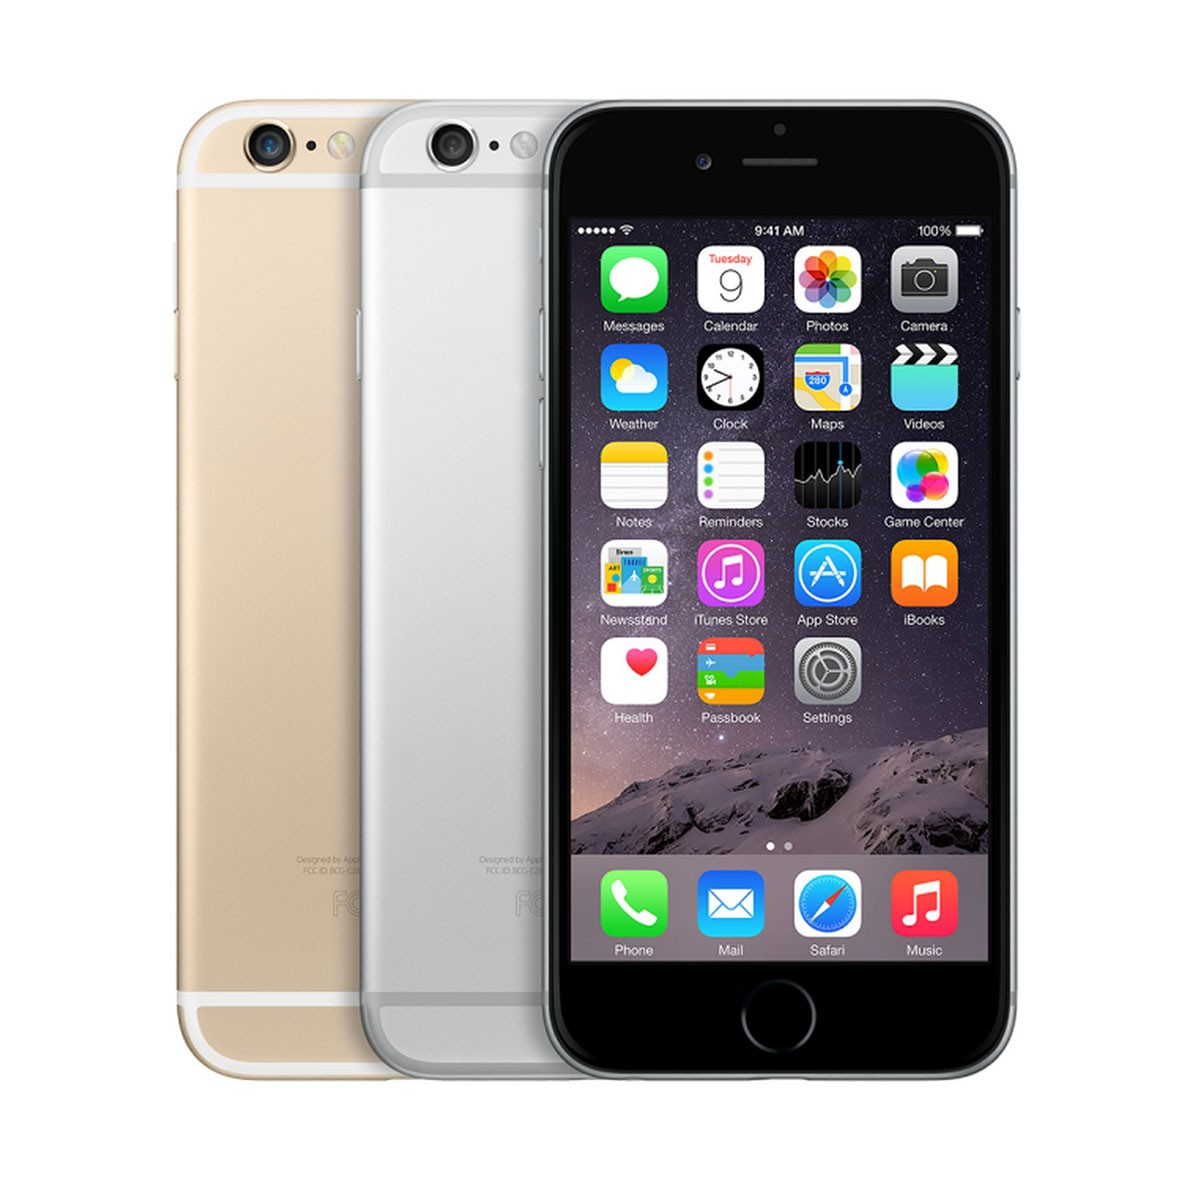 Apple iPhone 6 128 Gb Space Grey/Gold/Silver (Refurbished)